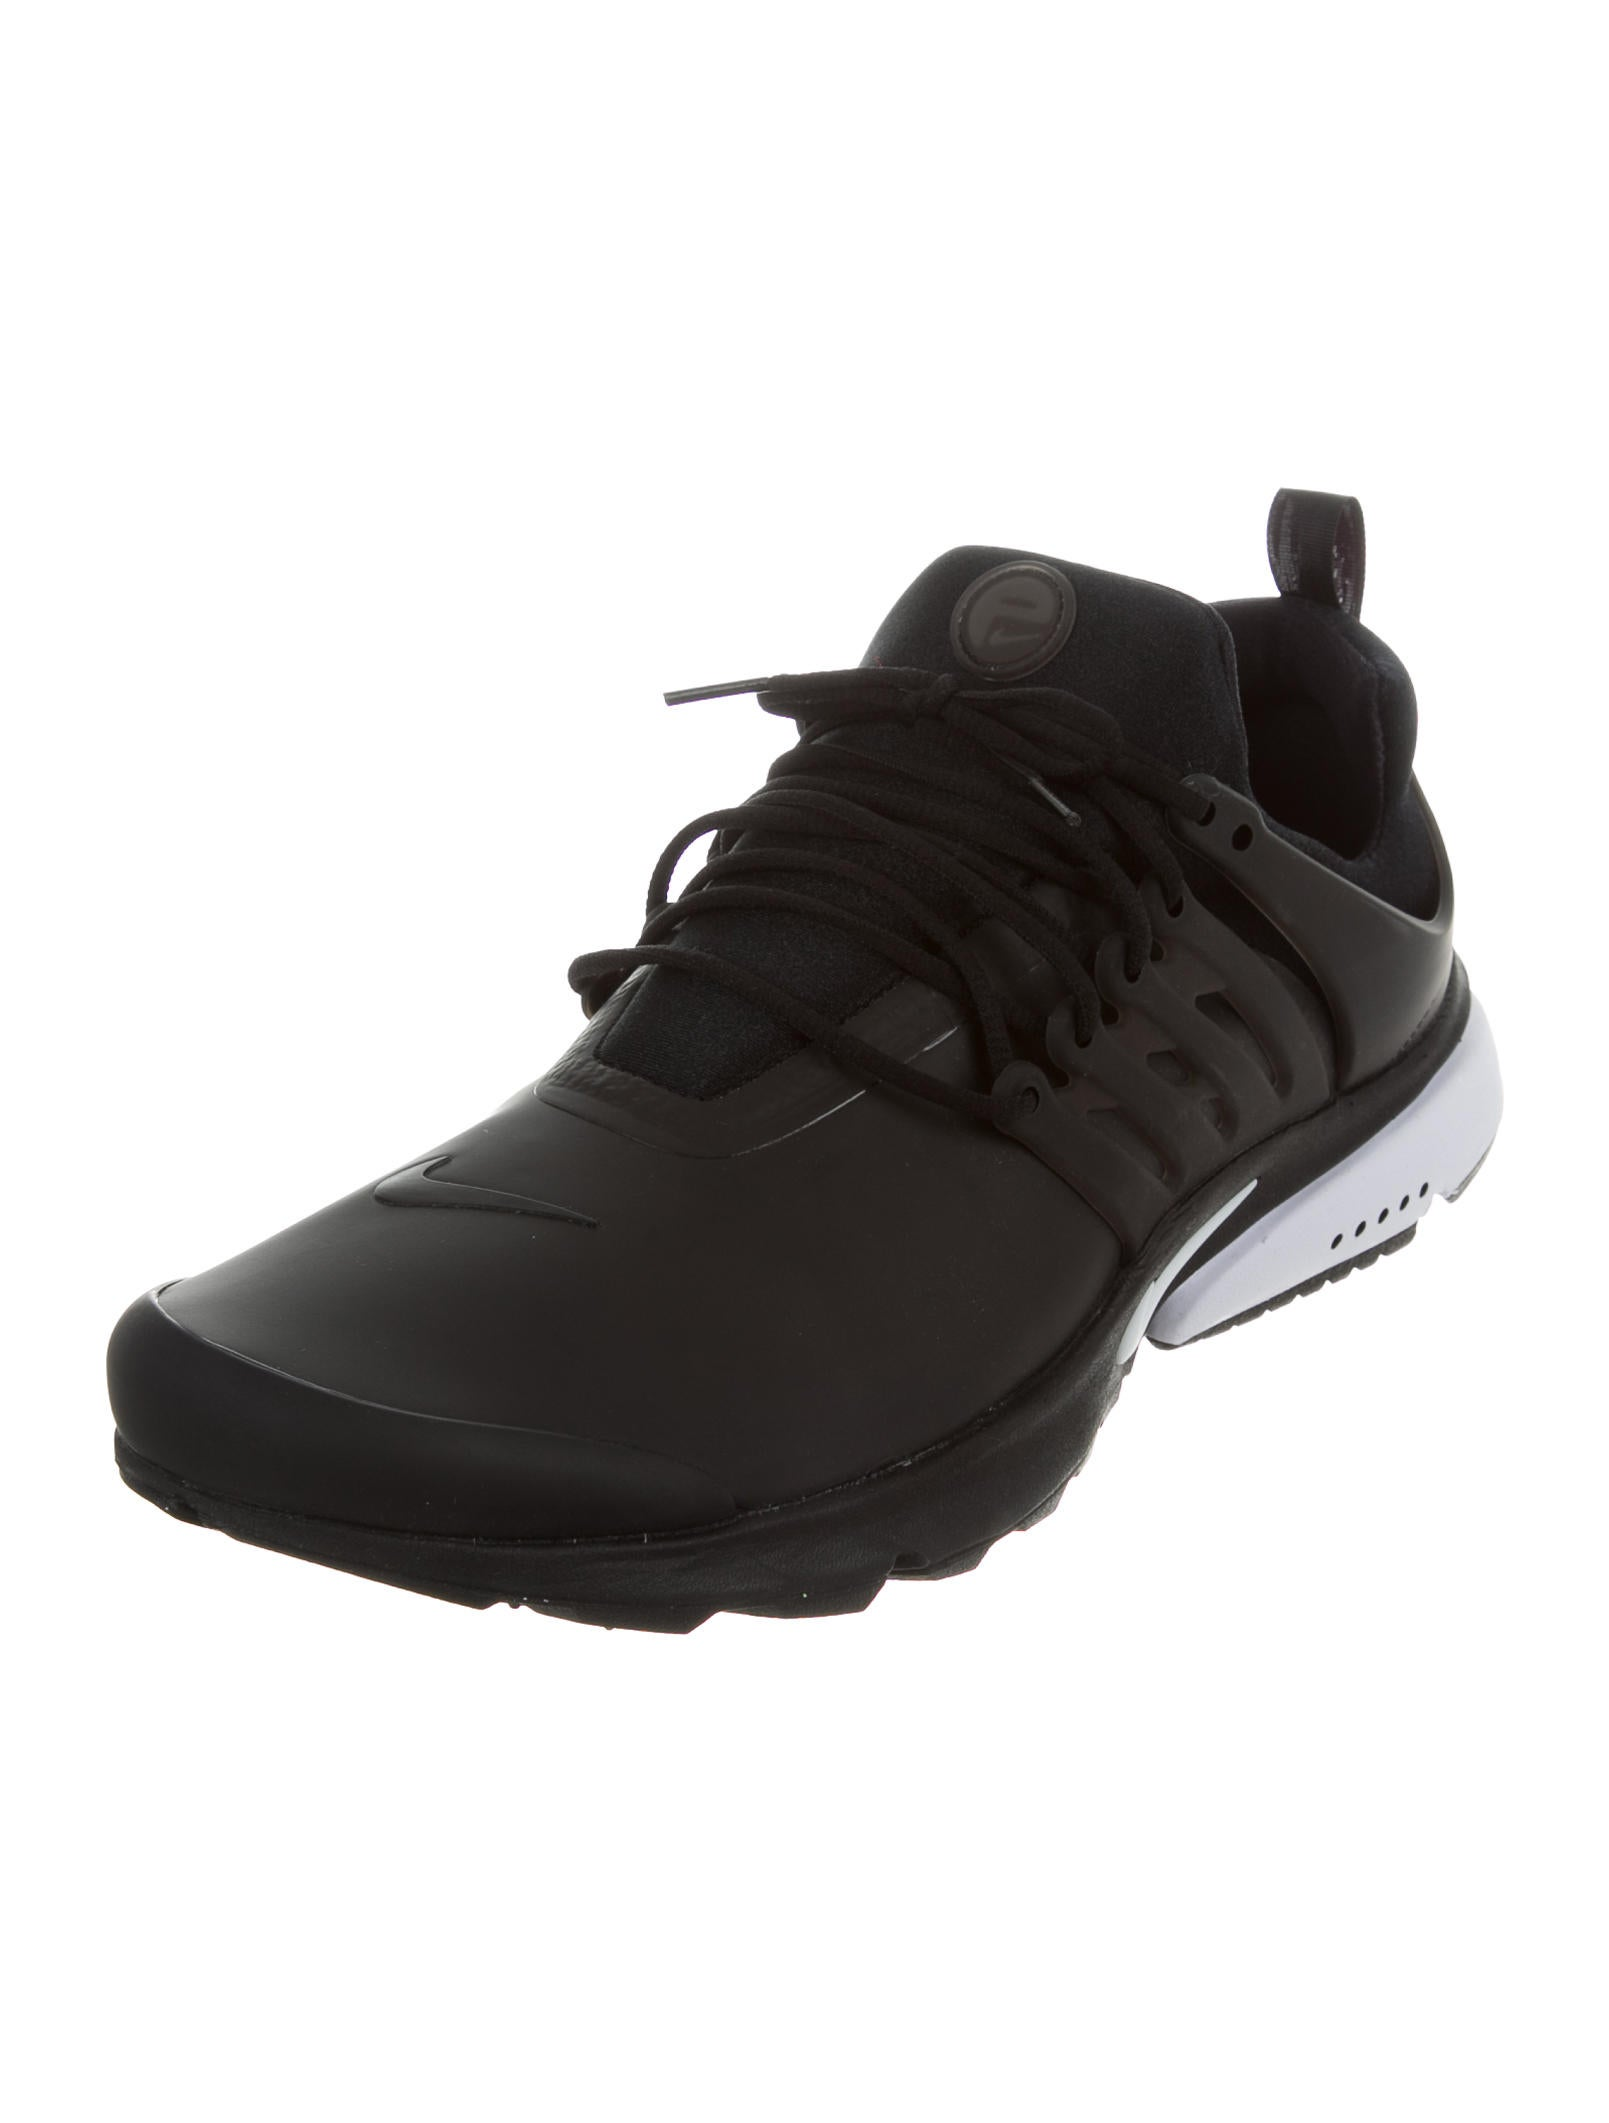 nike air presto low top sneakers w tags shoes wu221041 the realreal. Black Bedroom Furniture Sets. Home Design Ideas